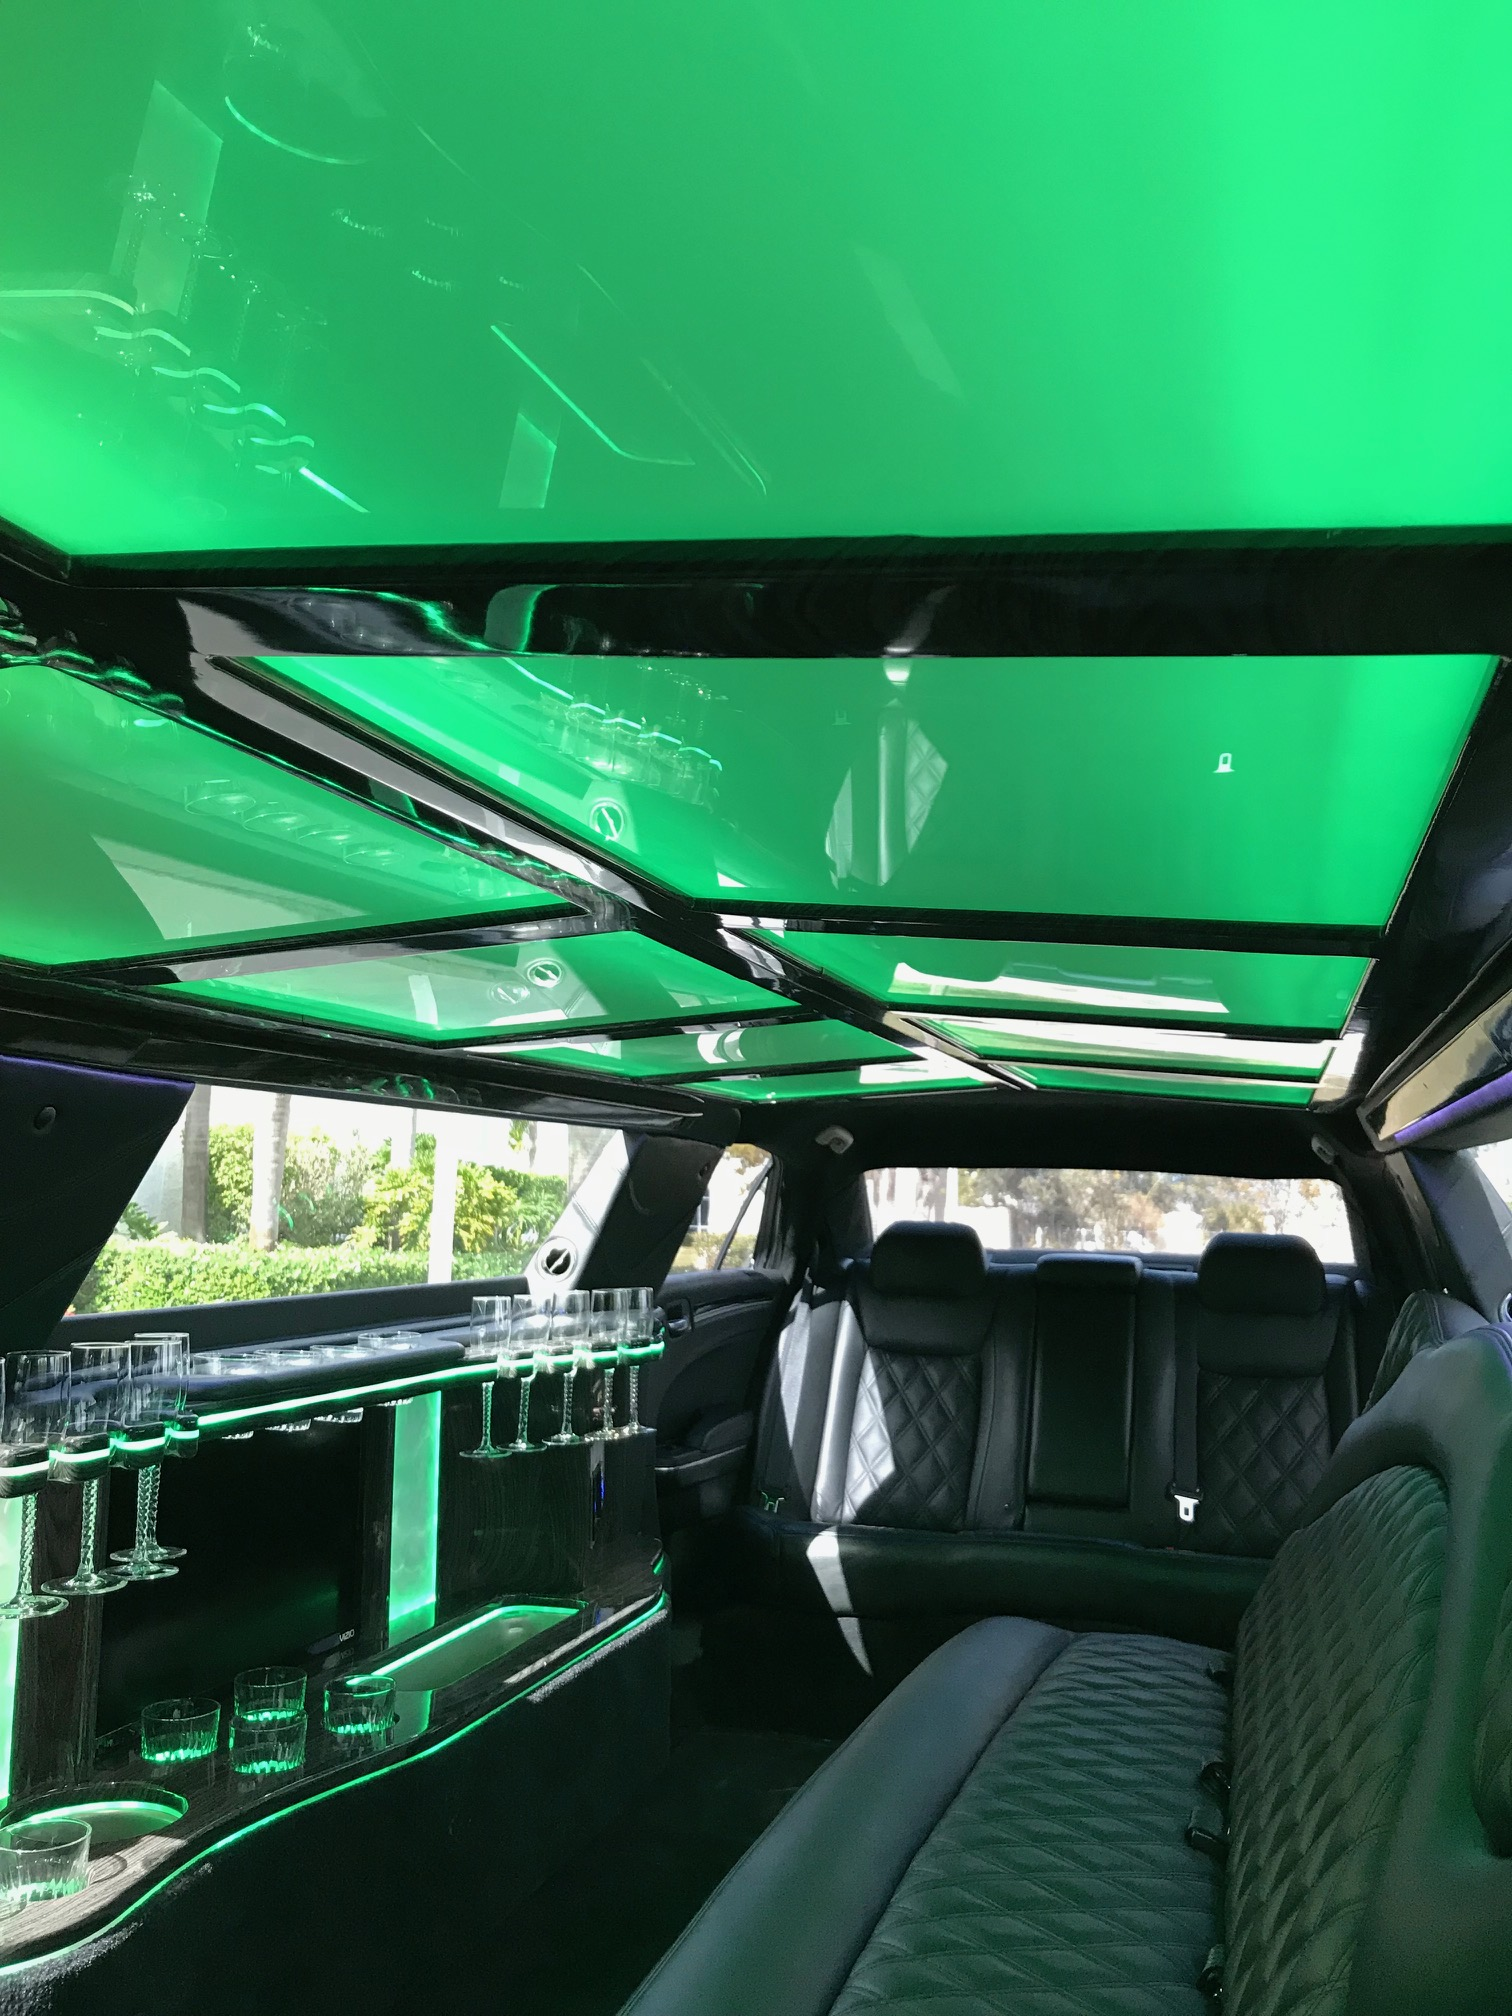 Lighting in limo ceiling